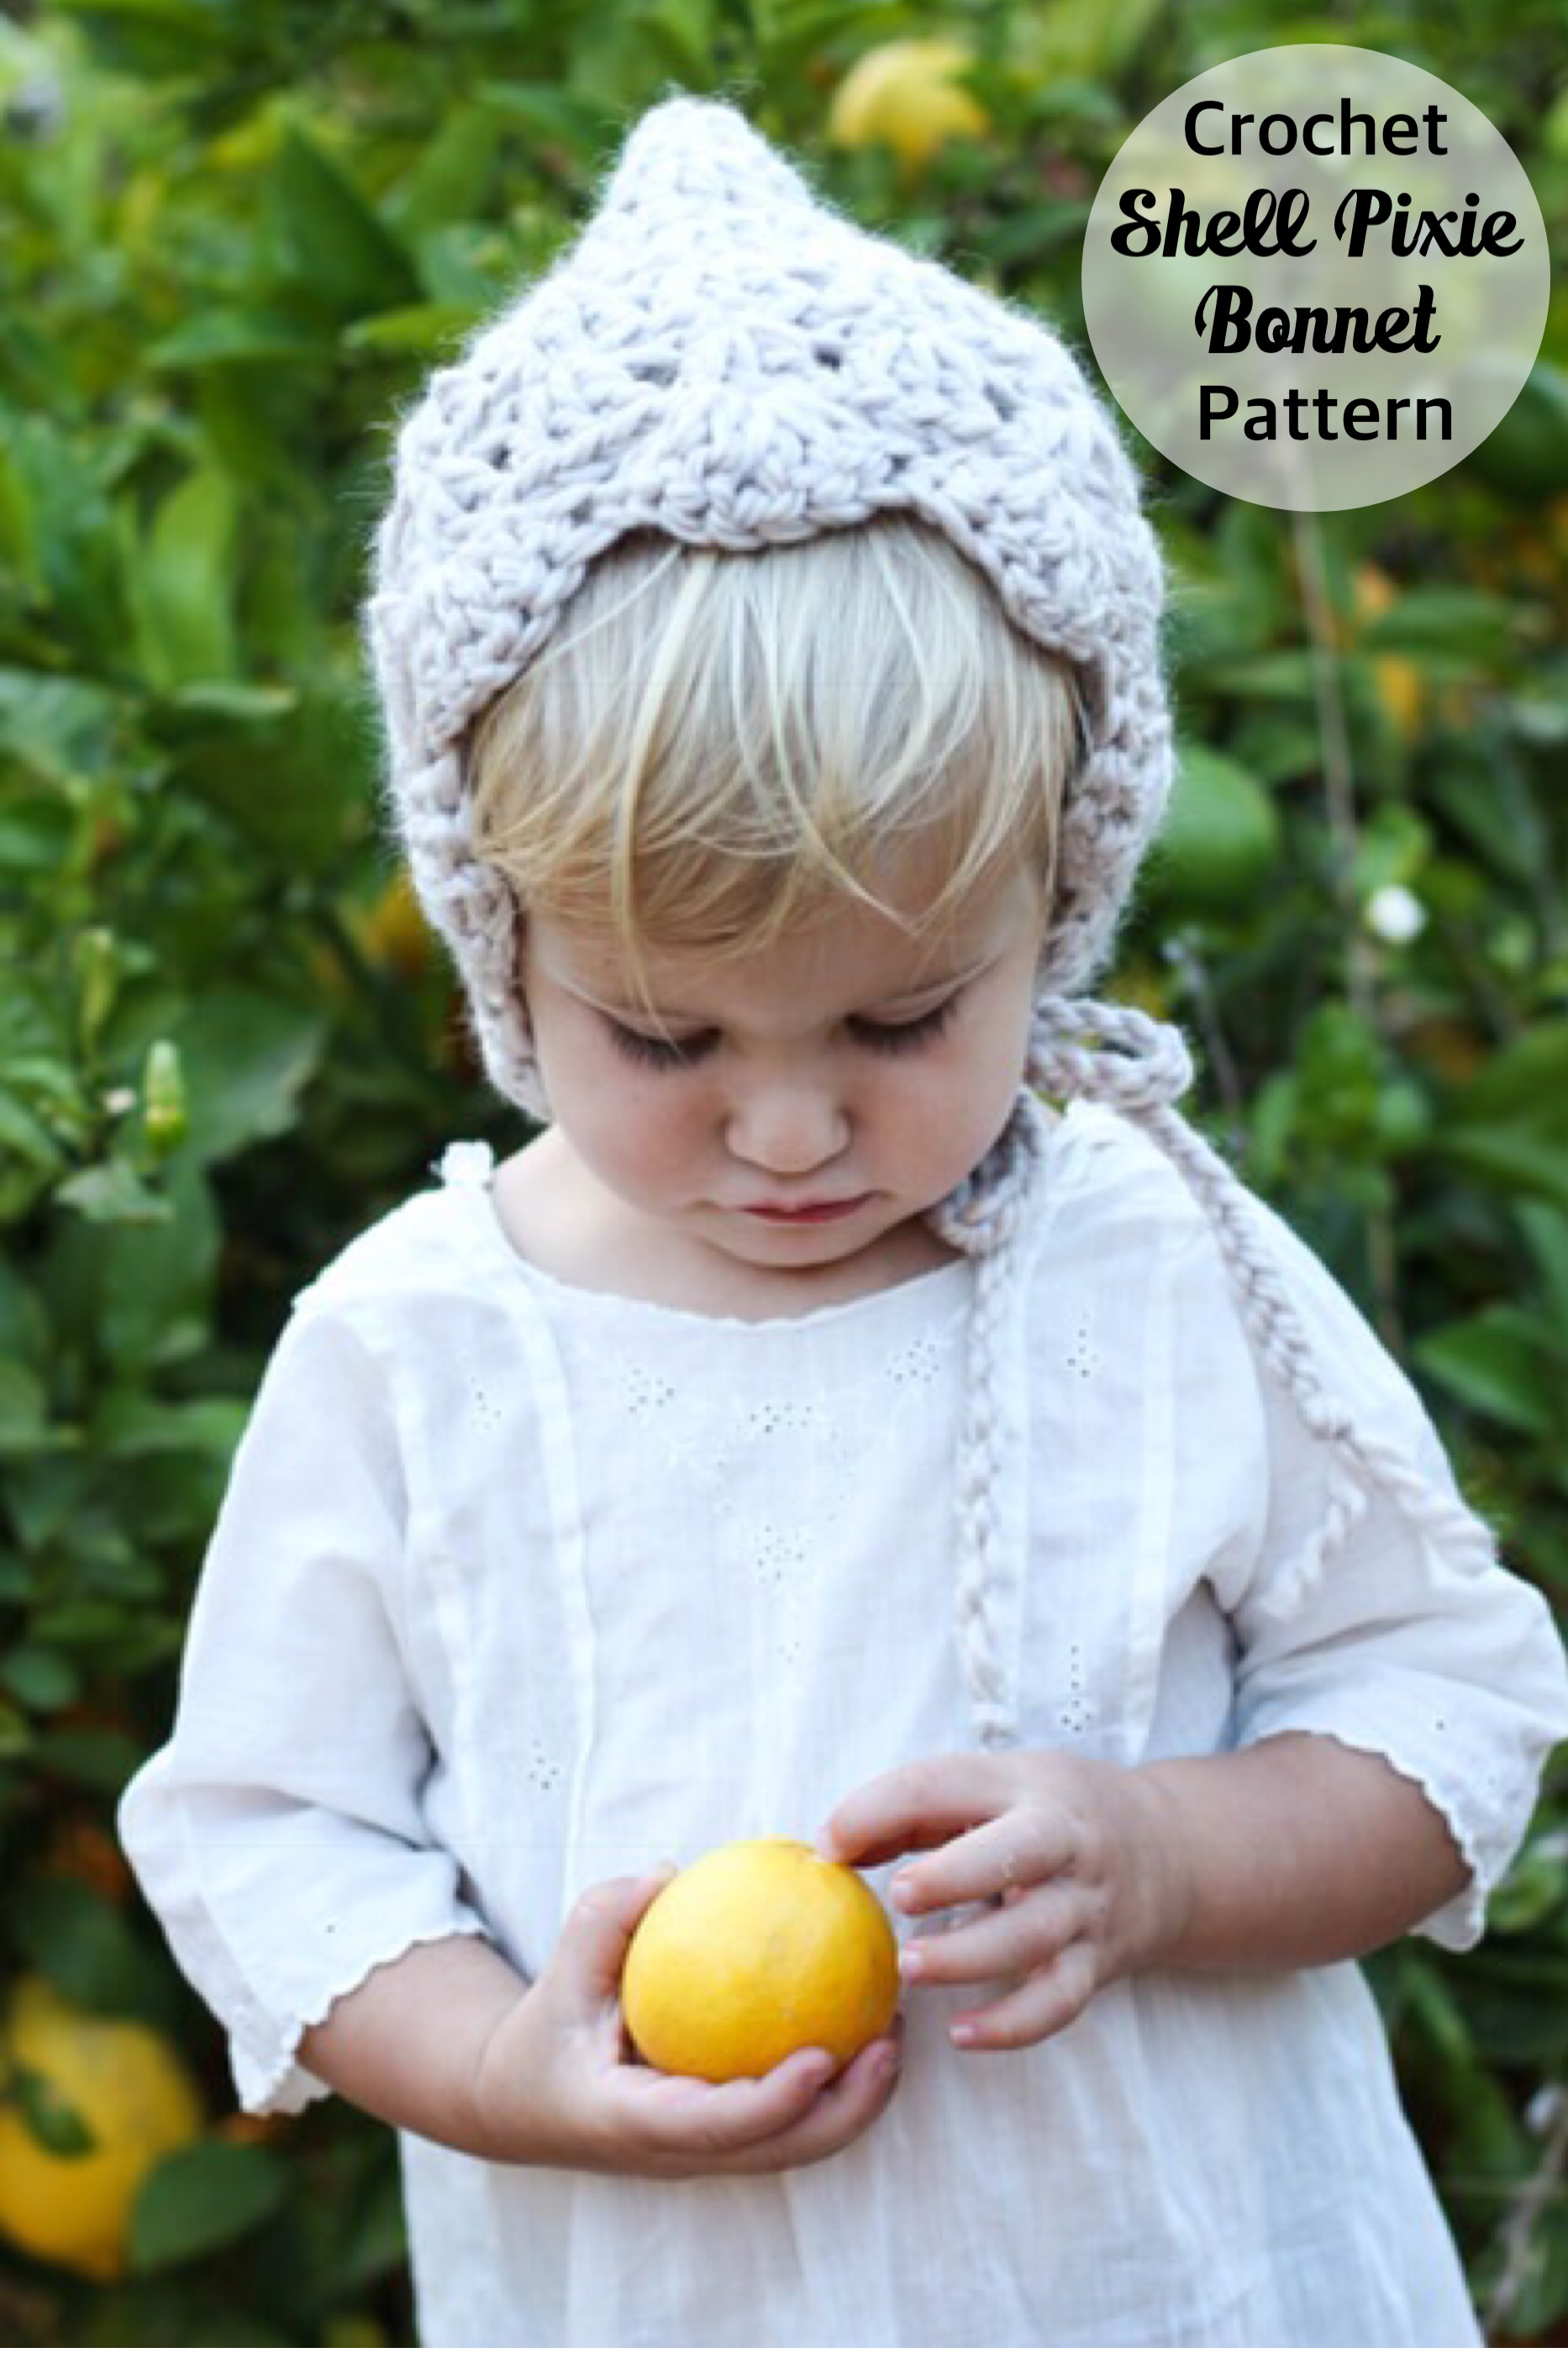 Crochet Pattern, Baby PIxie Bonnet, by Bluecorduroy.com